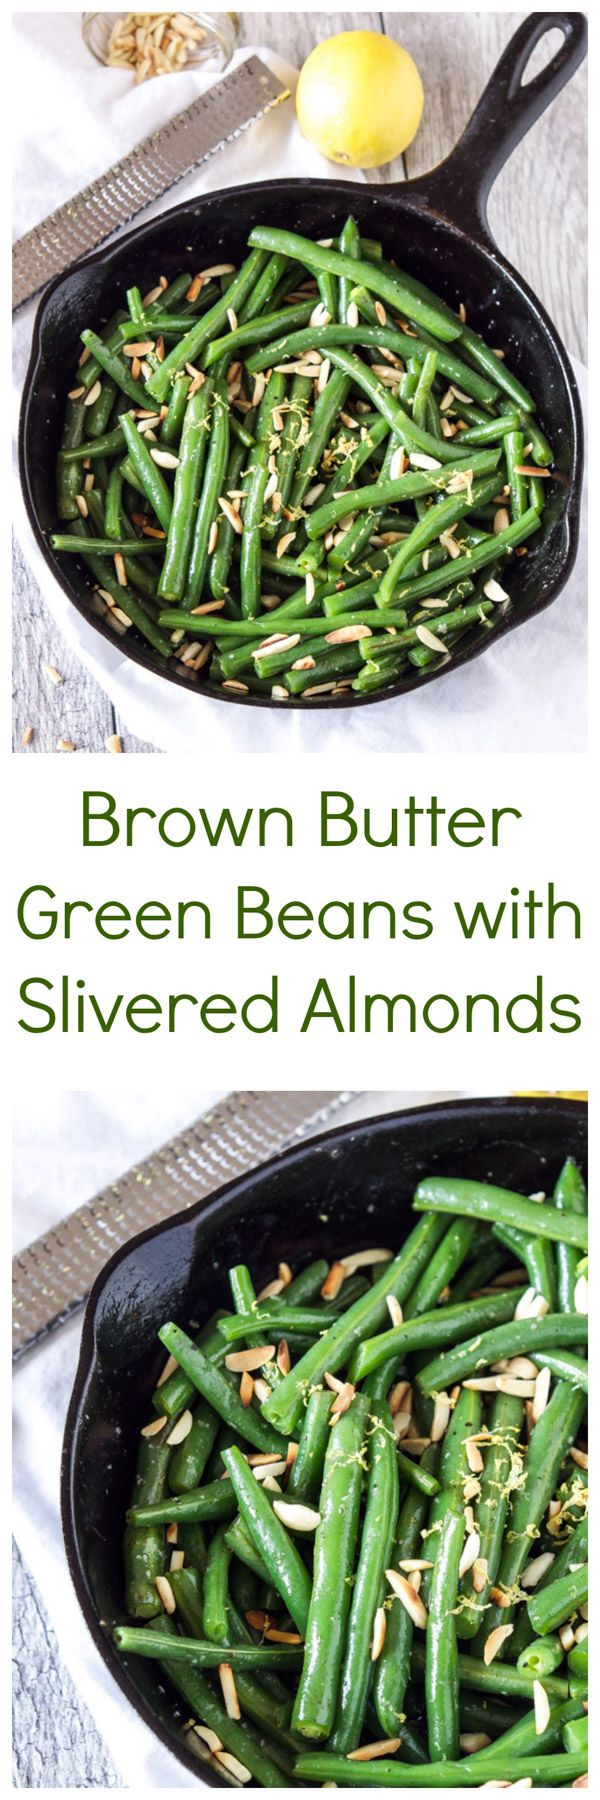 Brown Butter Green Beans with Slivered Almonds | Crisp green beans covered with brown butter, toasted almonds, and lemon zest are a simple and delicious side dish!